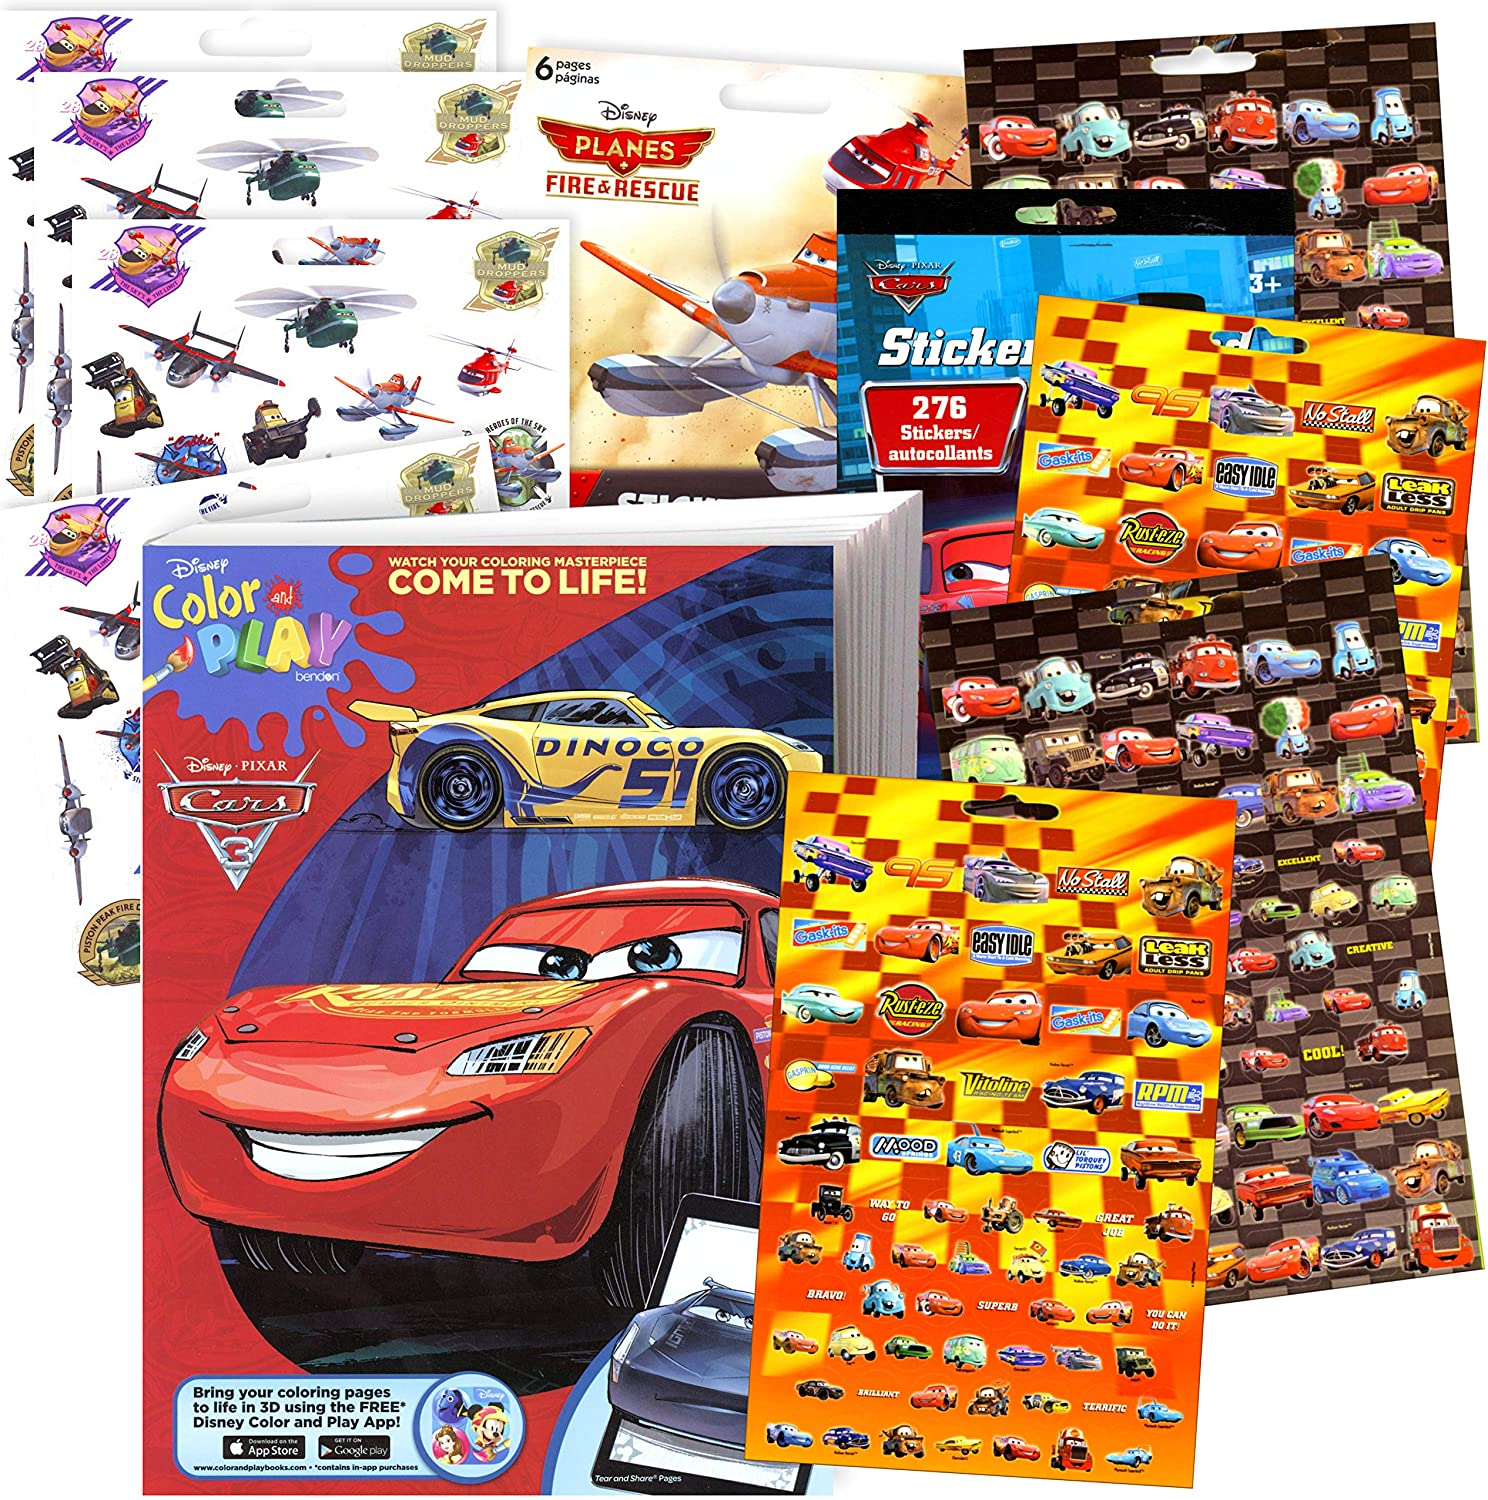 - Amazon.com: Disney Cars 3 Coloring Book And Stickers Super Set